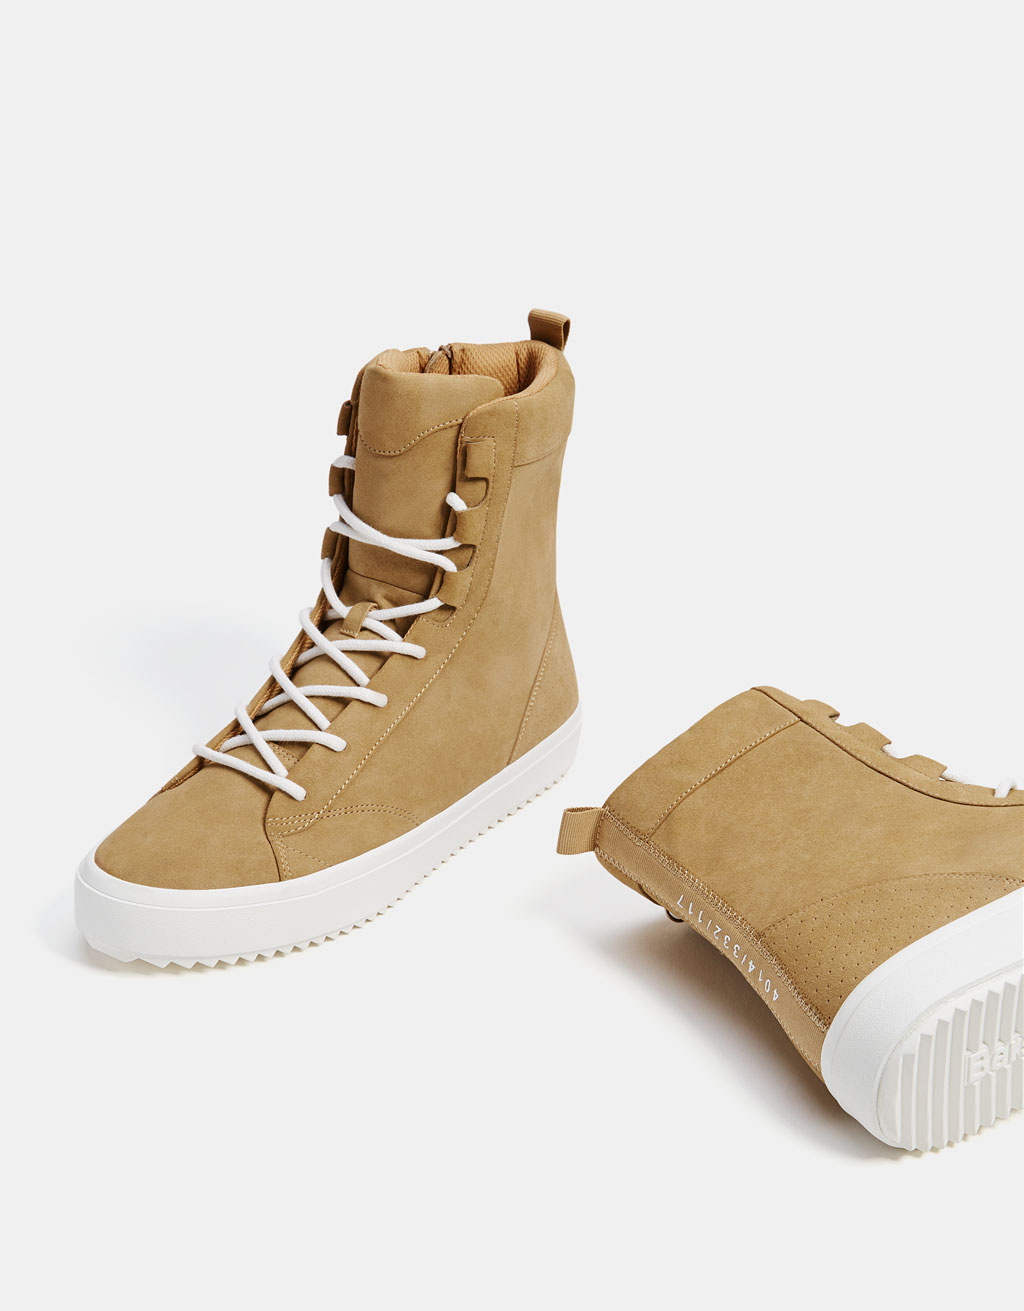 Men's lace-up high-top sneakers